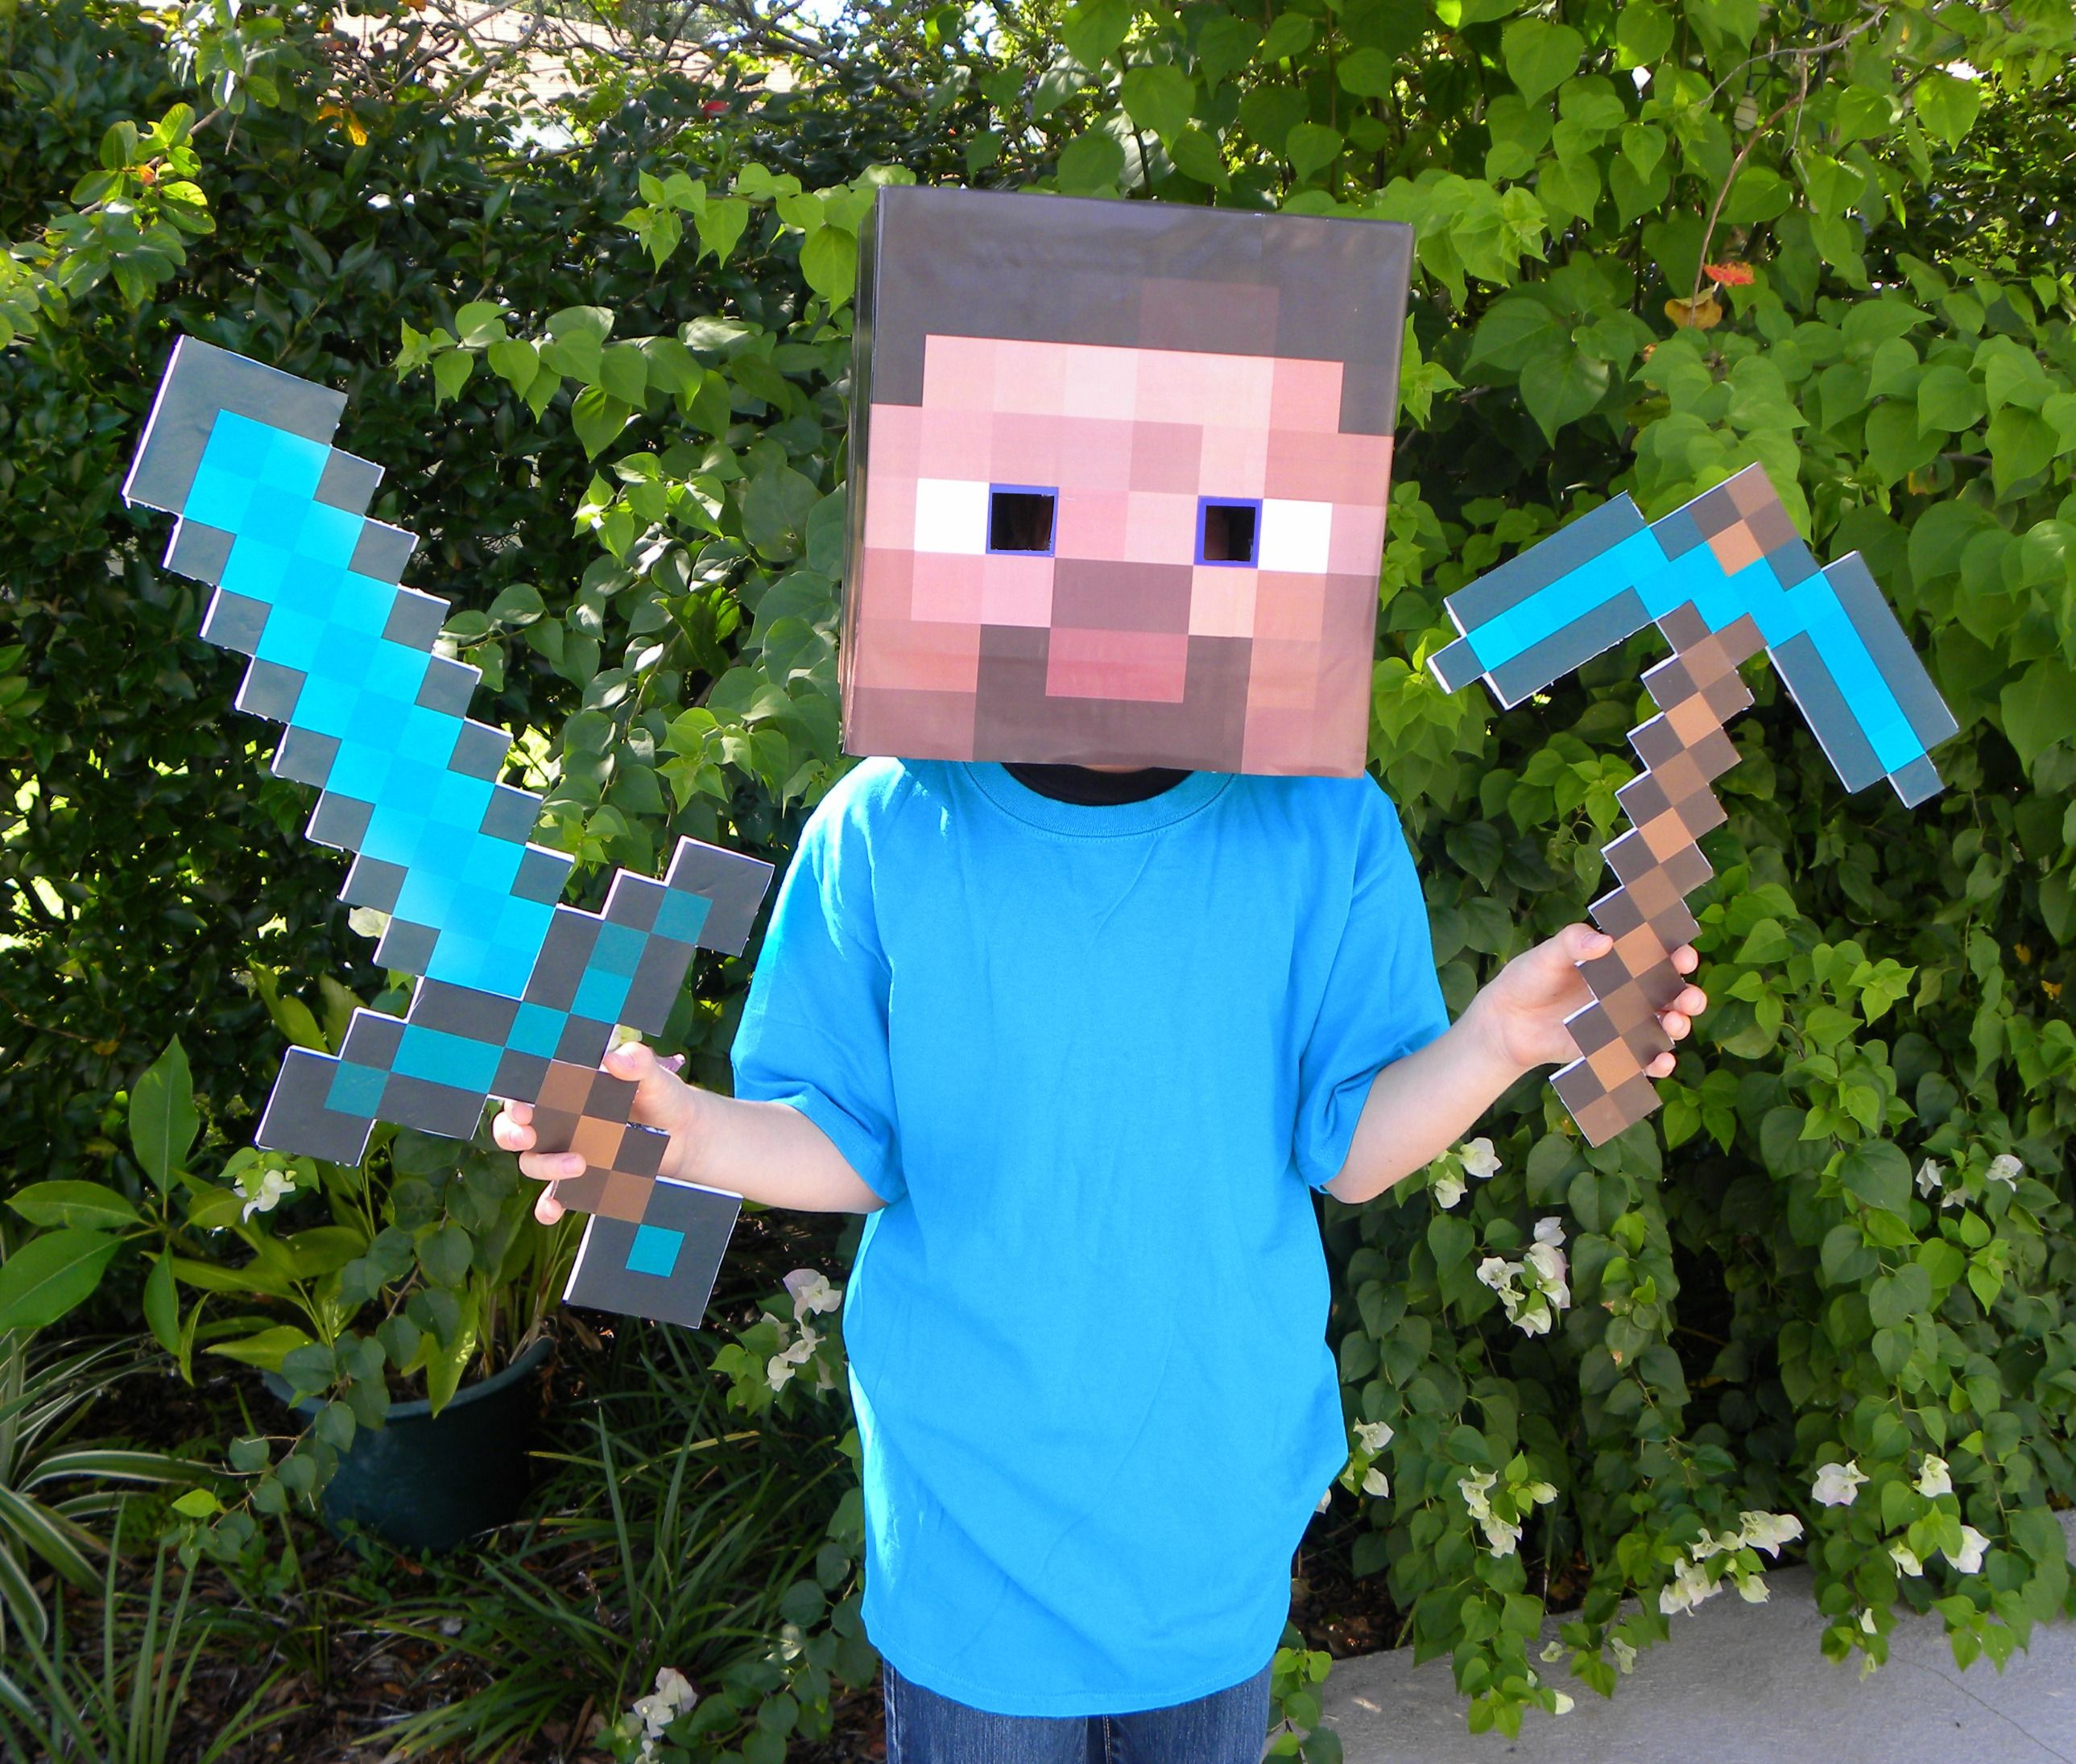 How To Make A Diamond Axe In Minecraft